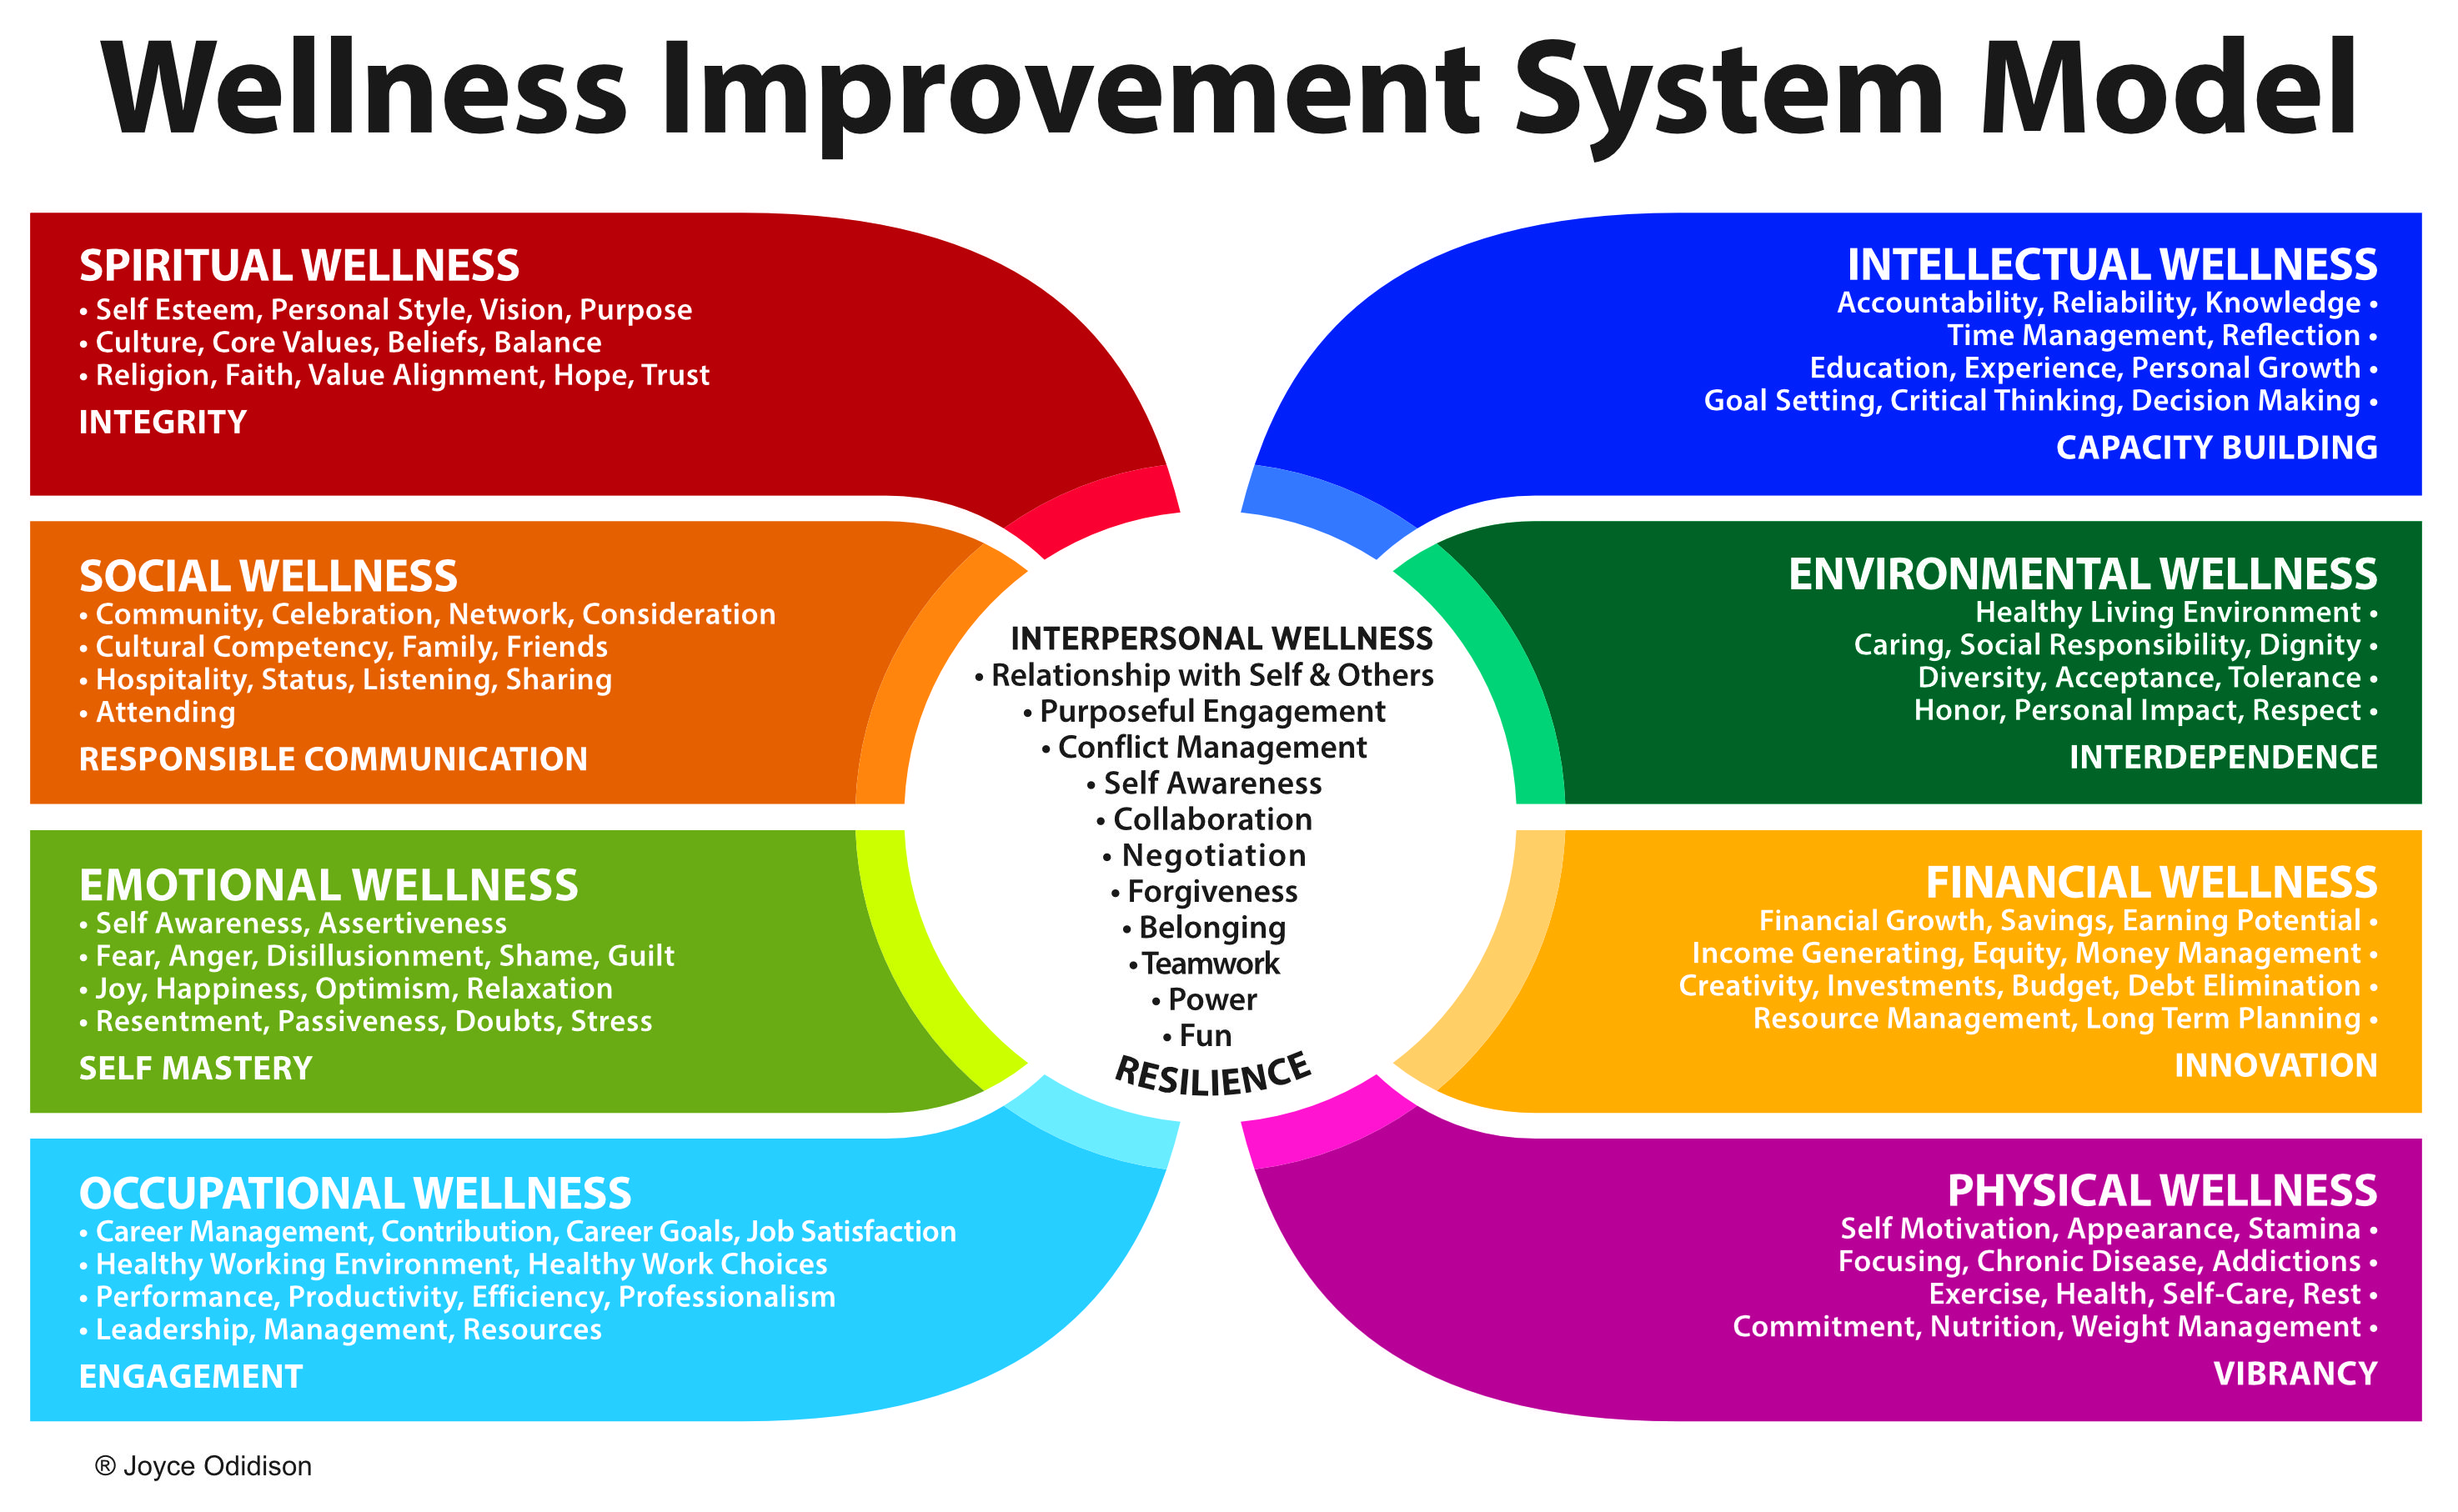 Wellness Improvement System Model Interpersonal Wellness